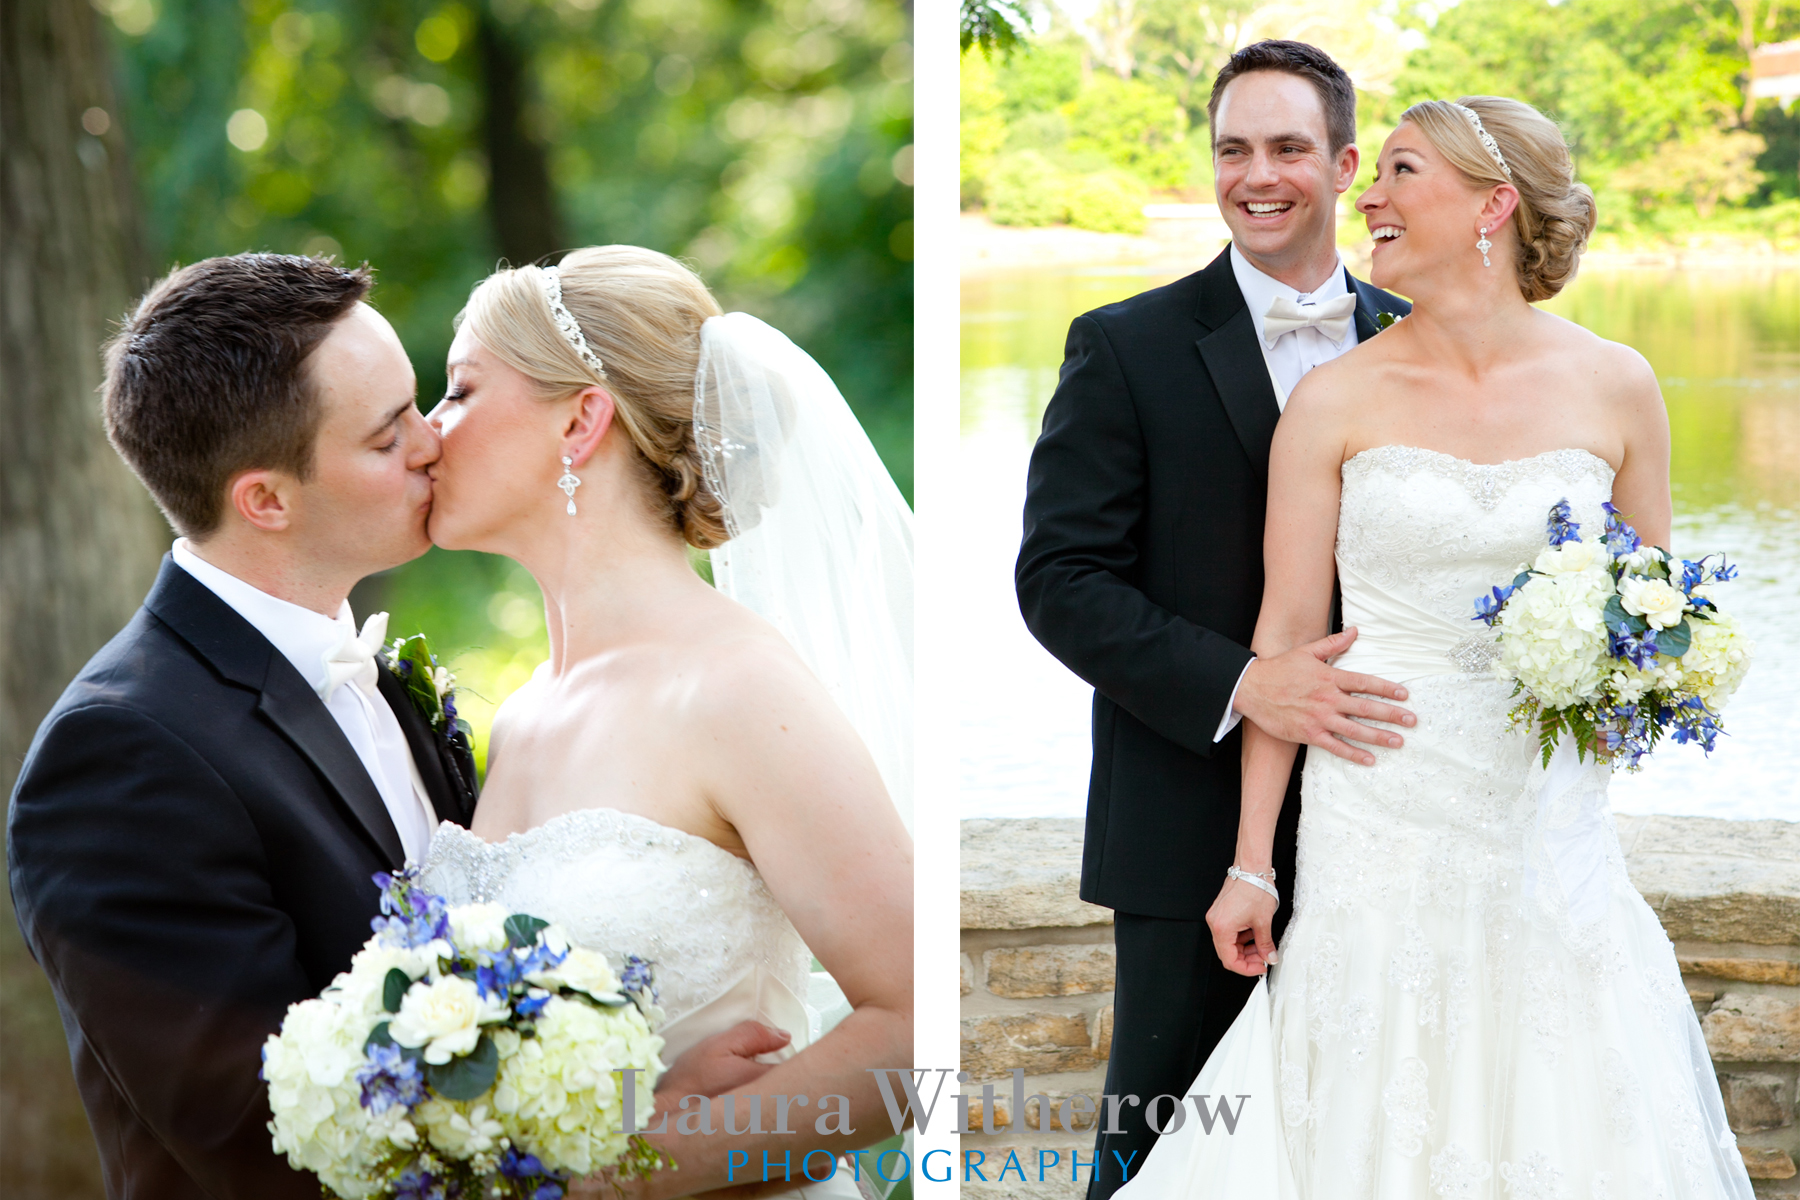 hyatt-lodge-oak-brrok-weddings.jpg